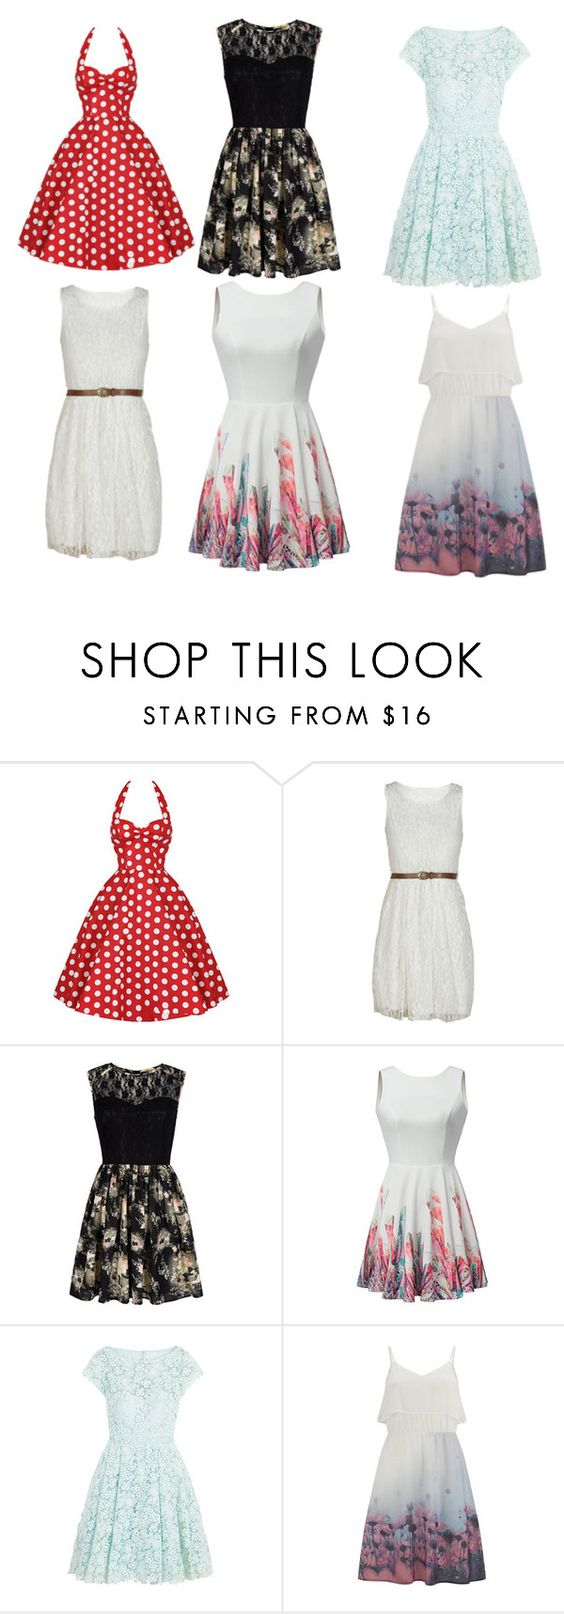 """""""dresses galore"""" by aryannah333 ❤ liked on Polyvore featuring Mela Loves London, ML Monique Lhuillier and Vero Moda"""